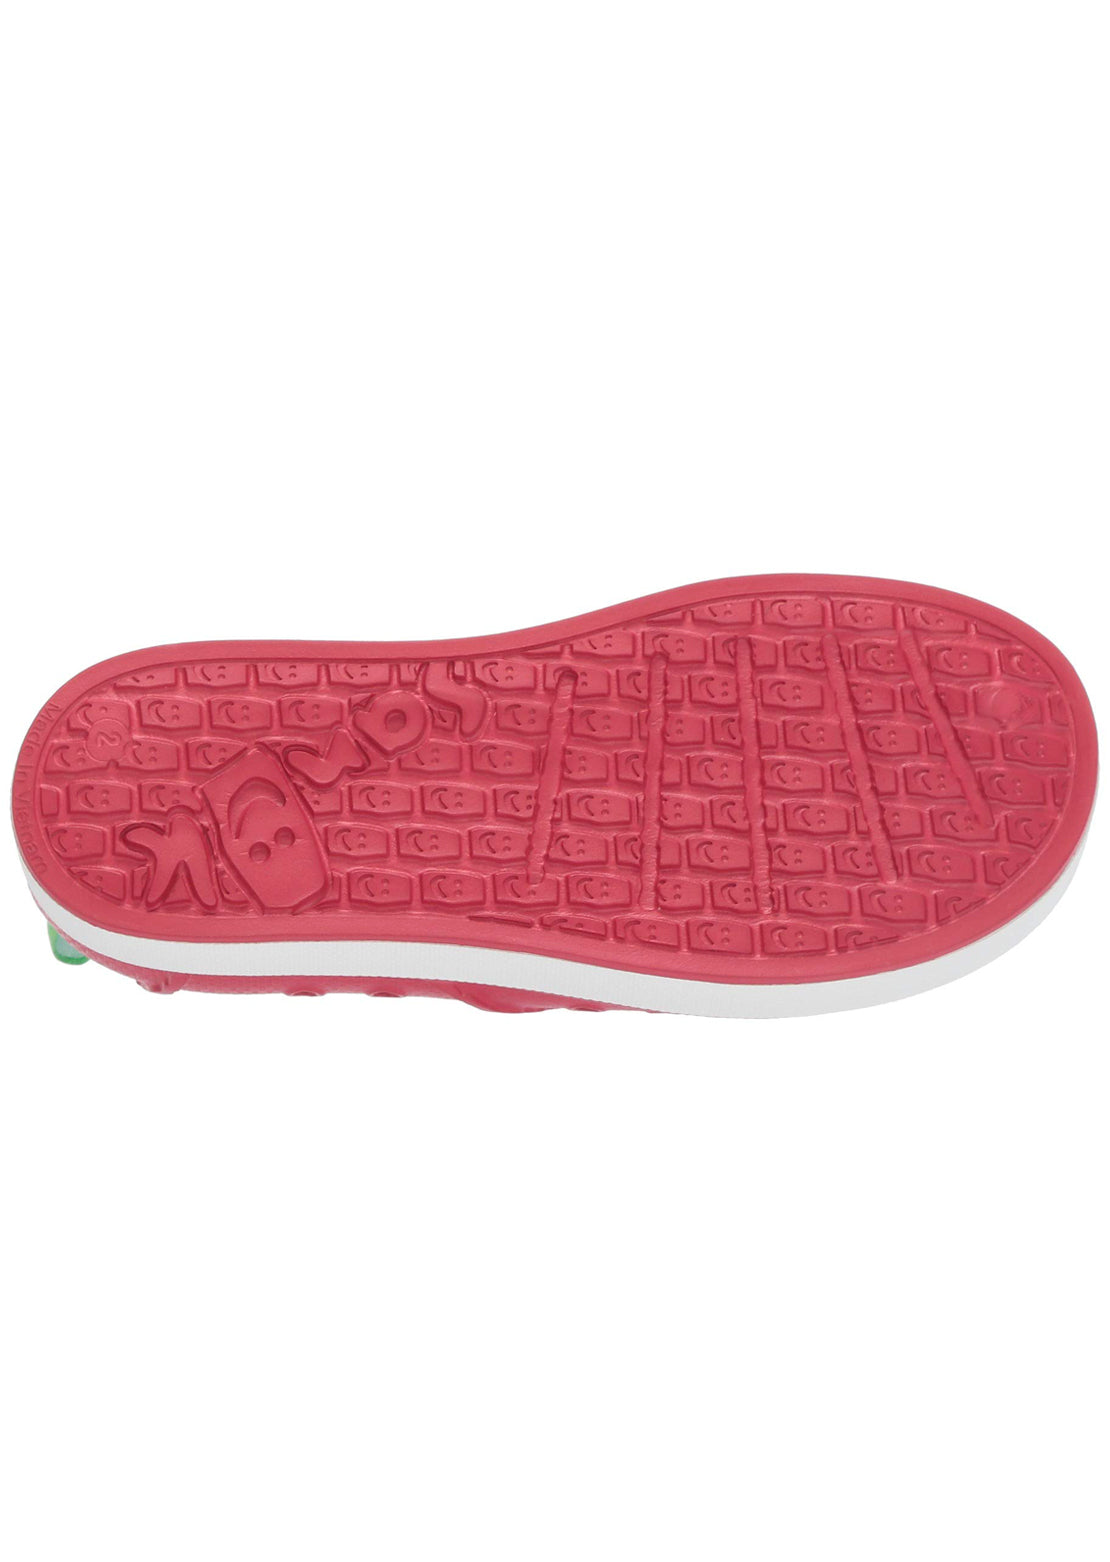 Sanuk Junior Lil Walker Shoes Red/White